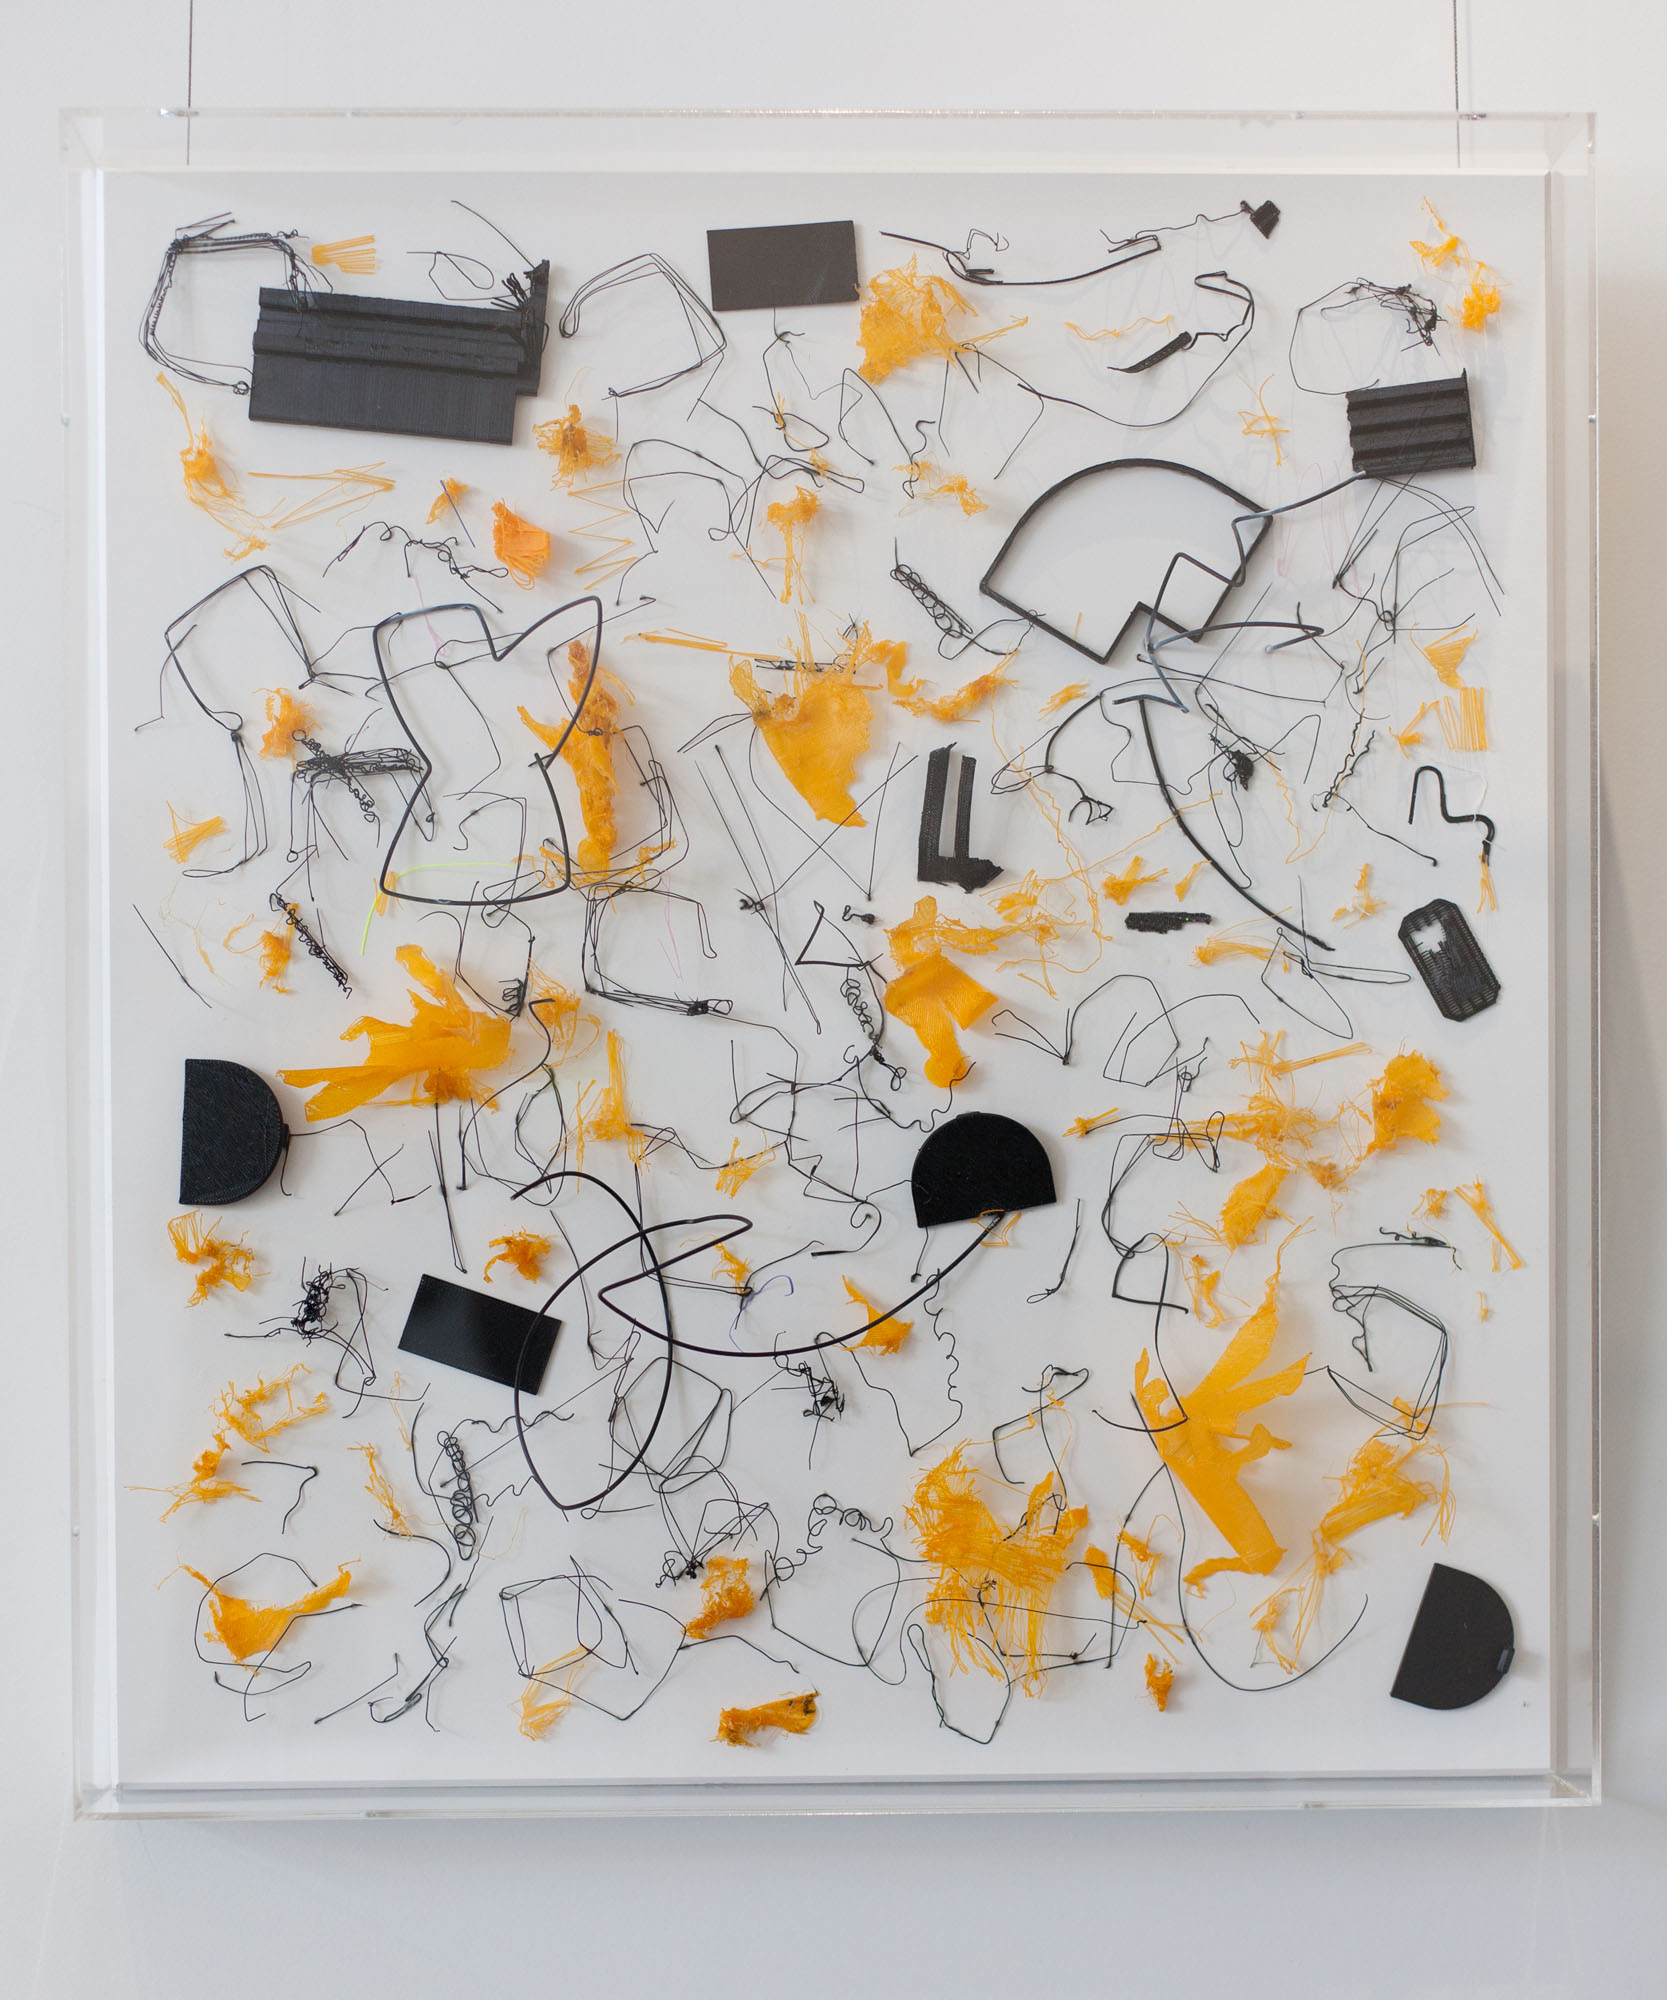 Tina Douglas, harsh 2019, 3D printed plastic errors on ragboard, 60 x 55 x 6 cm with acrylic box